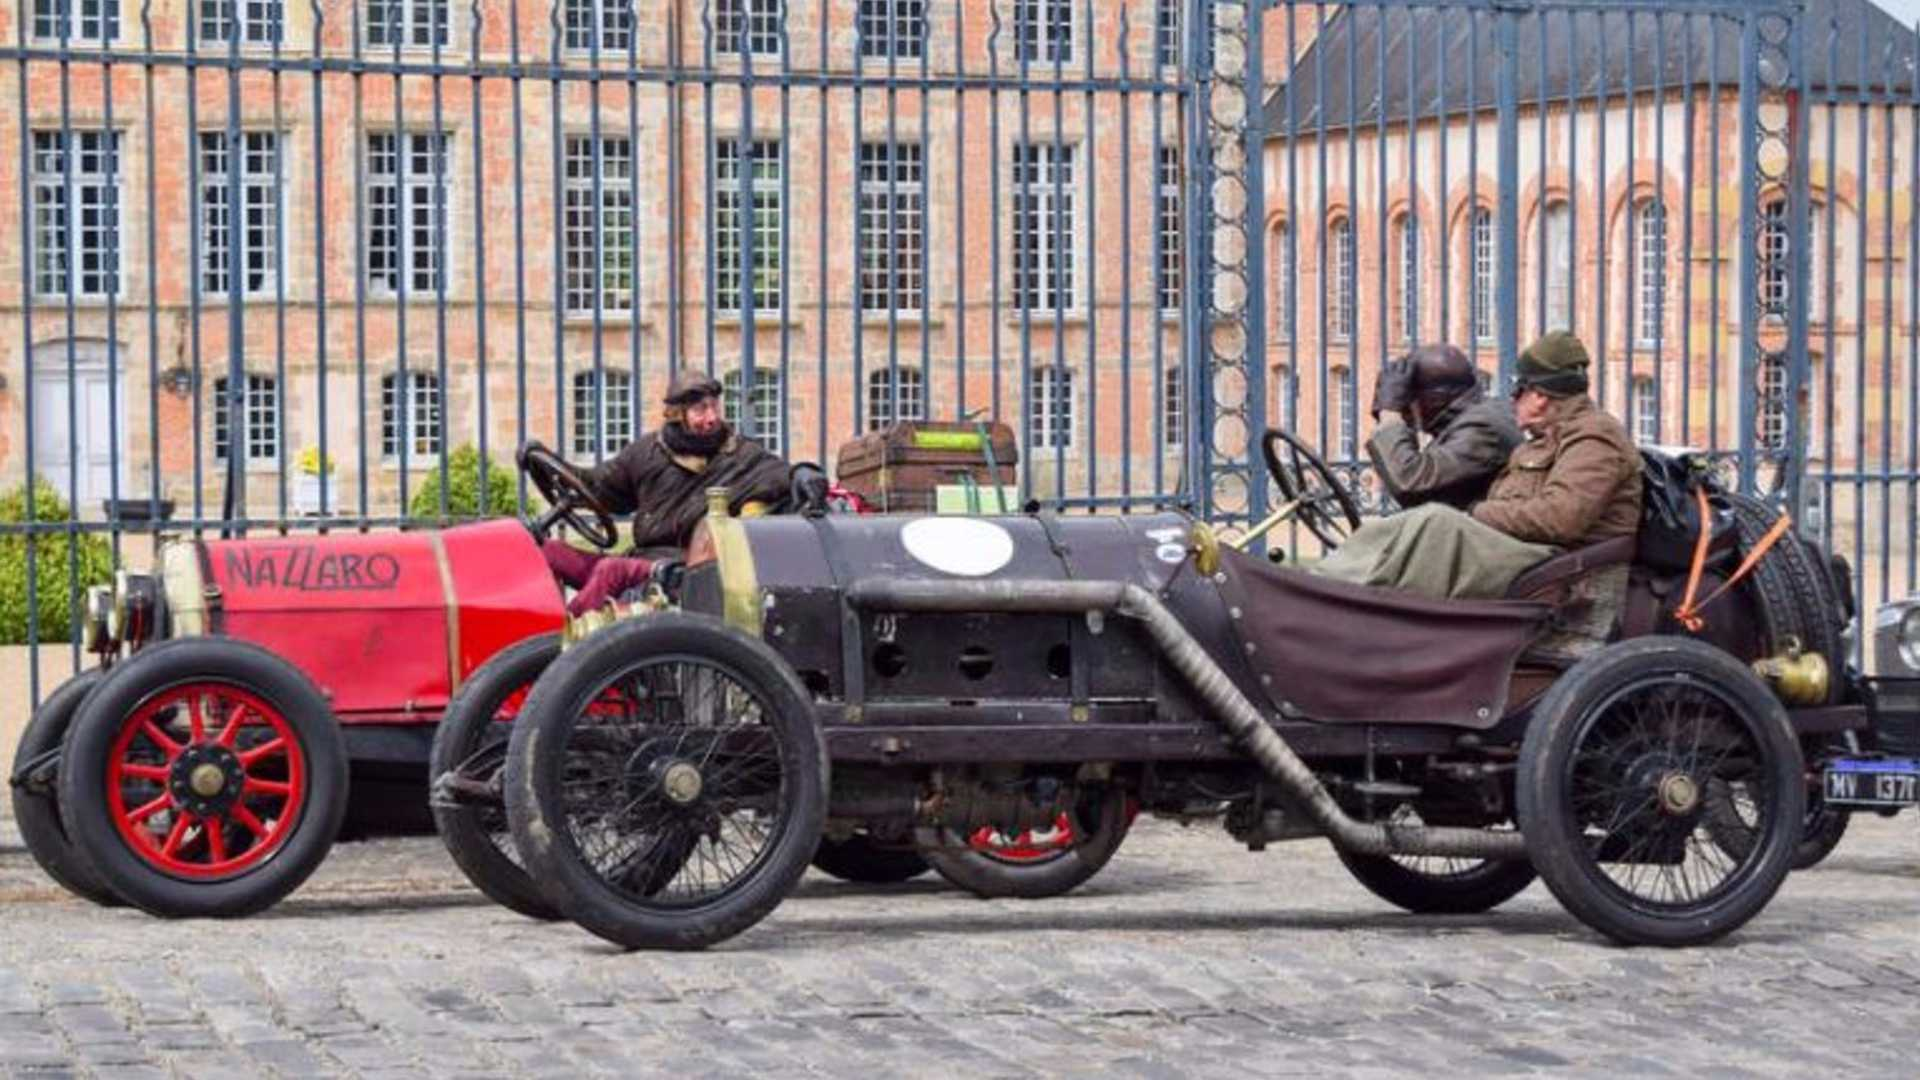 Taking On The Fierce Montlhéry Revival In A 1913 Nazzaro